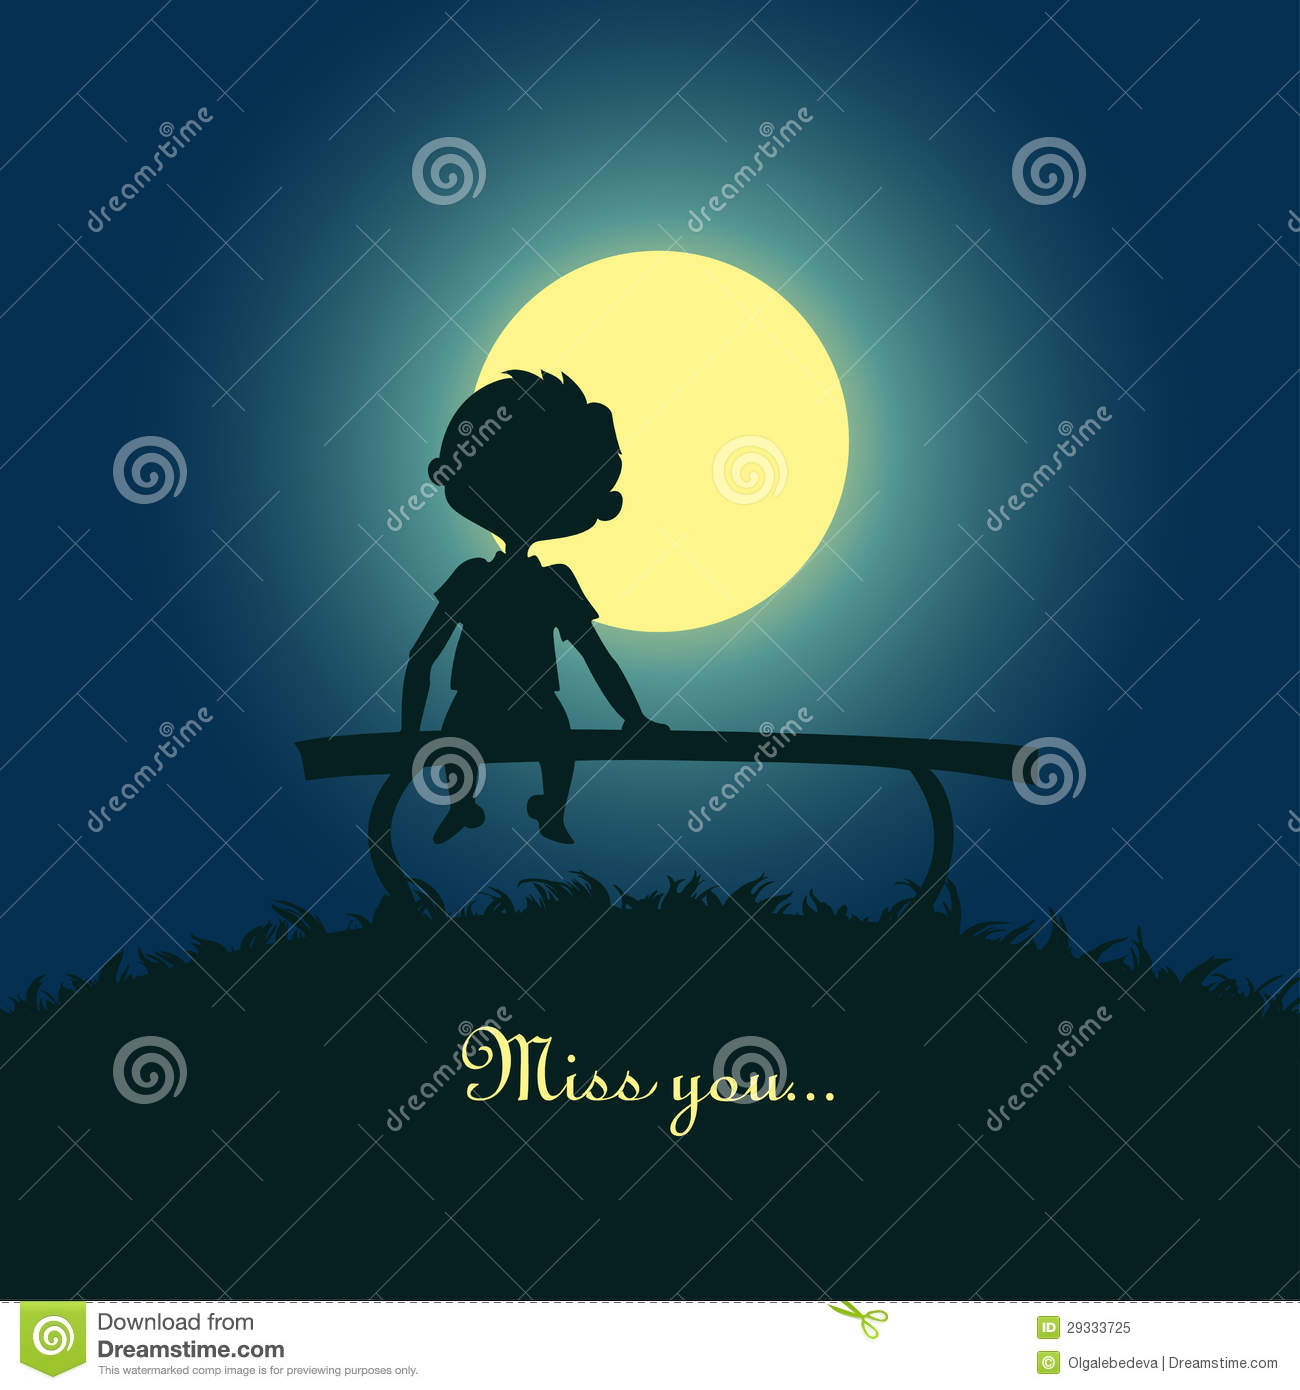 Sad Girl Sitting Alone Hd Wallpapers Boy Sitting Lonely In The Moonlight Royalty Free Stock